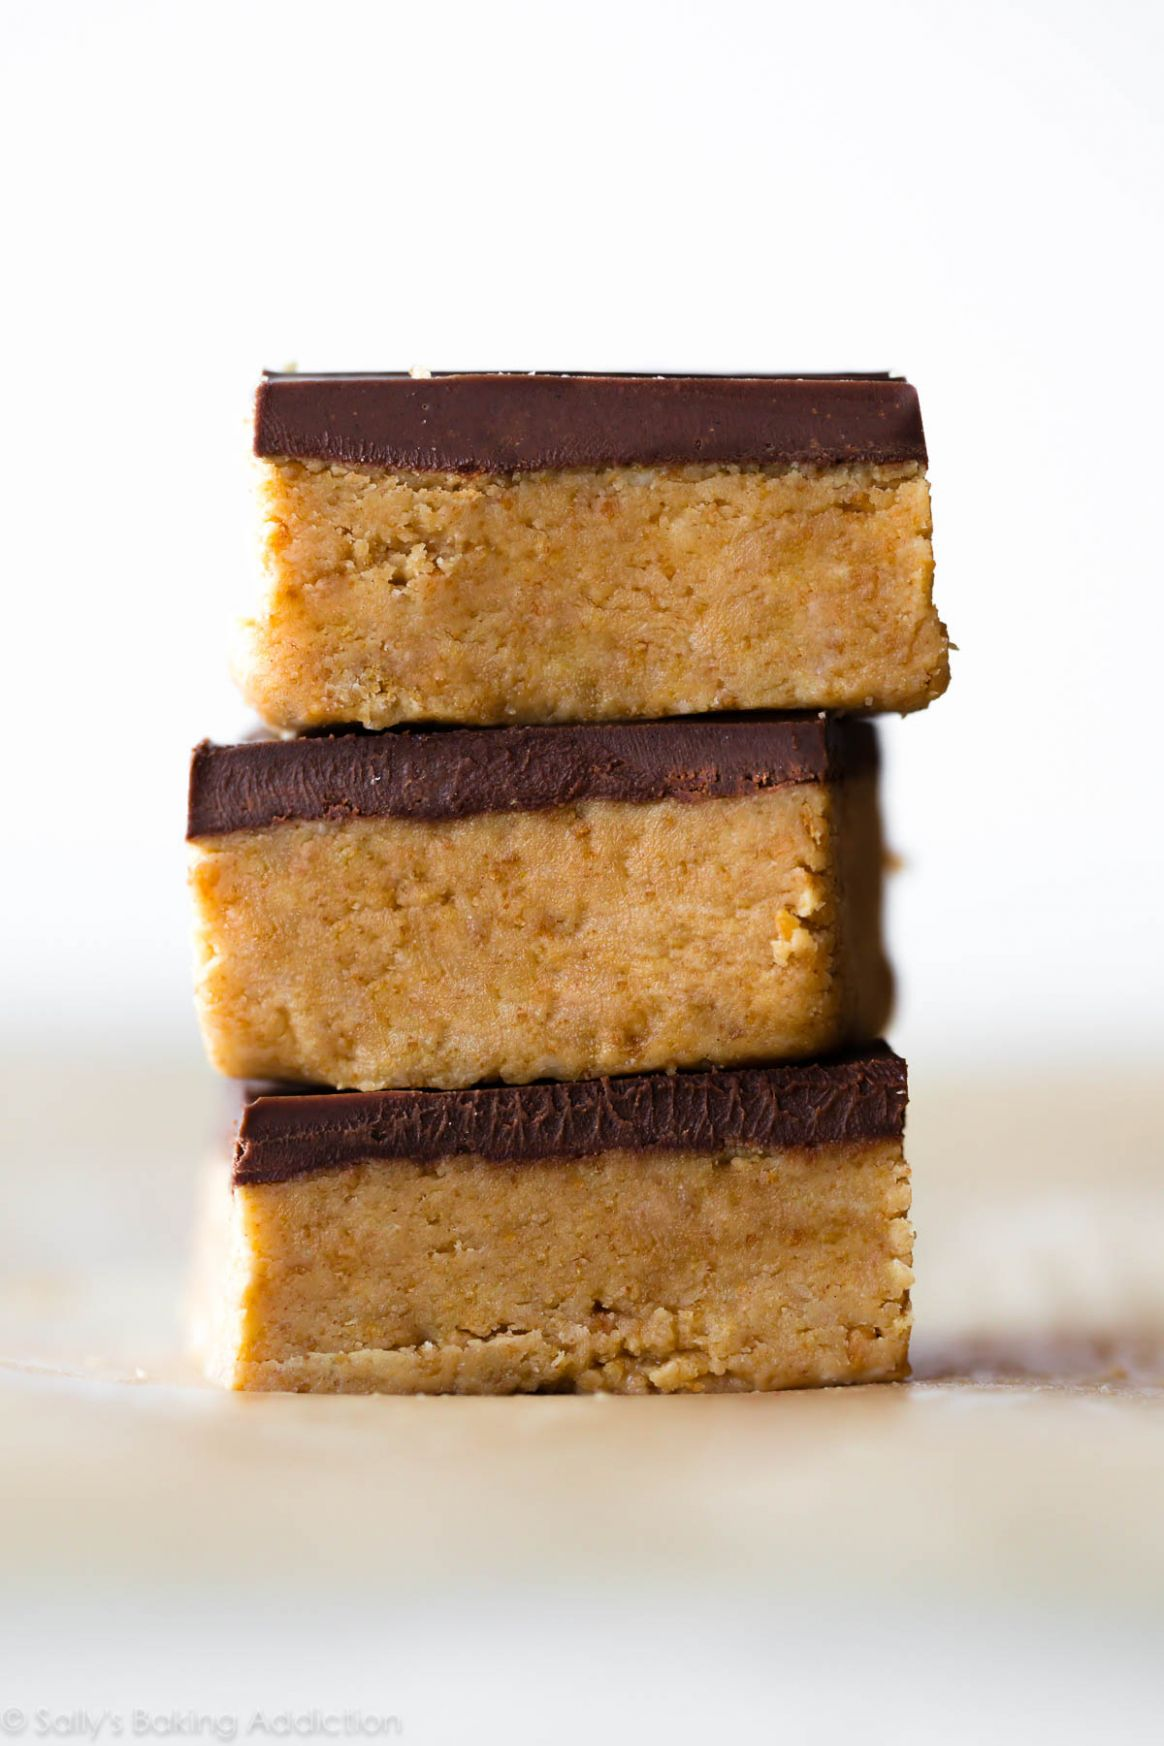 No-Bake Chocolate Peanut Butter Bars - Dessert Recipes Peanut Butter